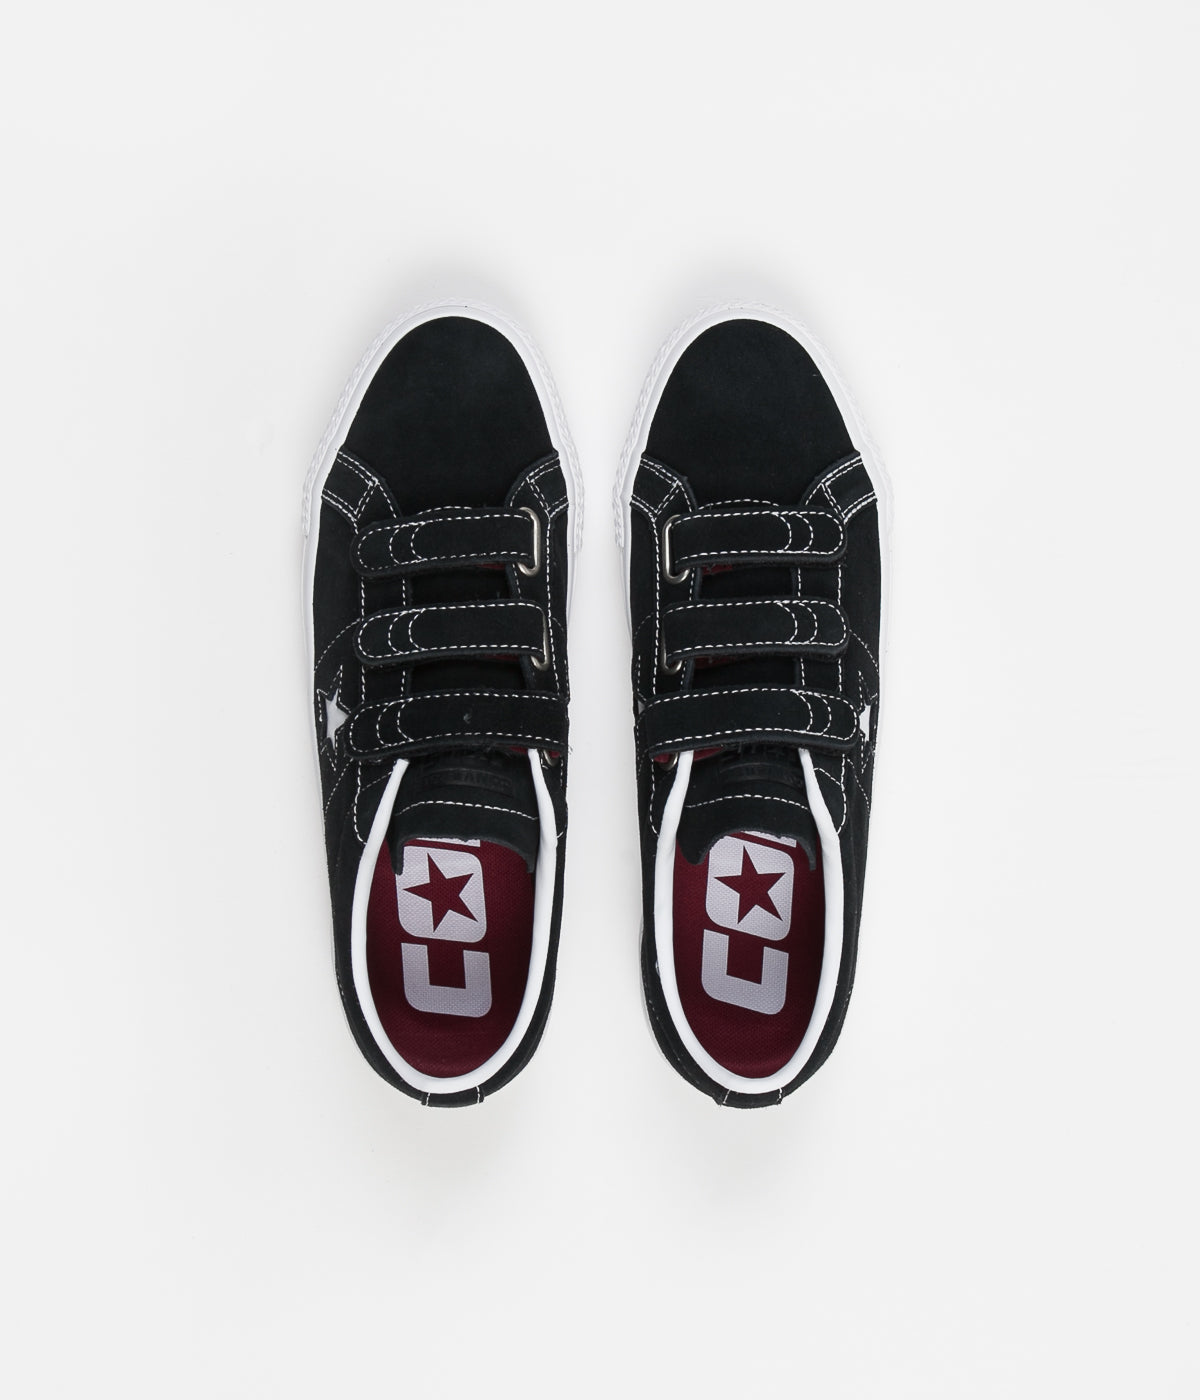 225fee5ca1af2a Converse One Star Pro 3V Ox Shoes - Black   Pomegranate Red   White ...